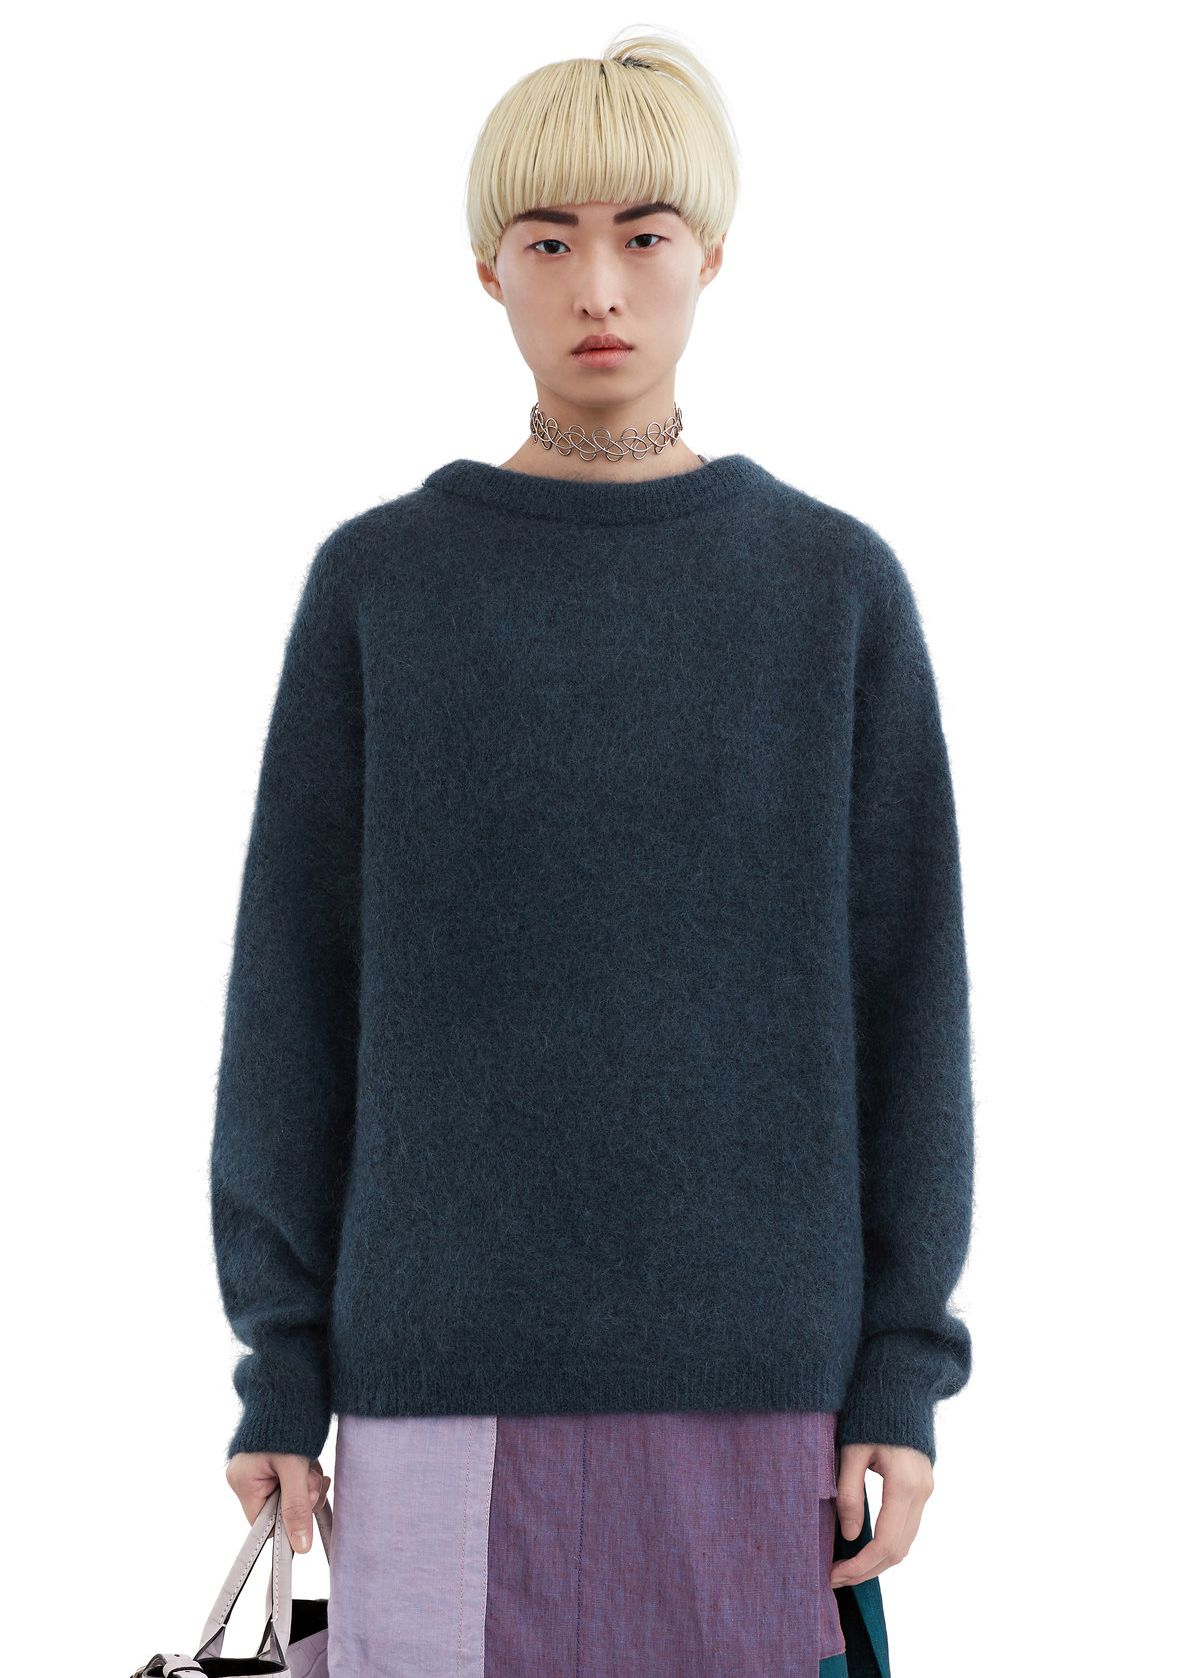 A mohair sweater in grey-blue